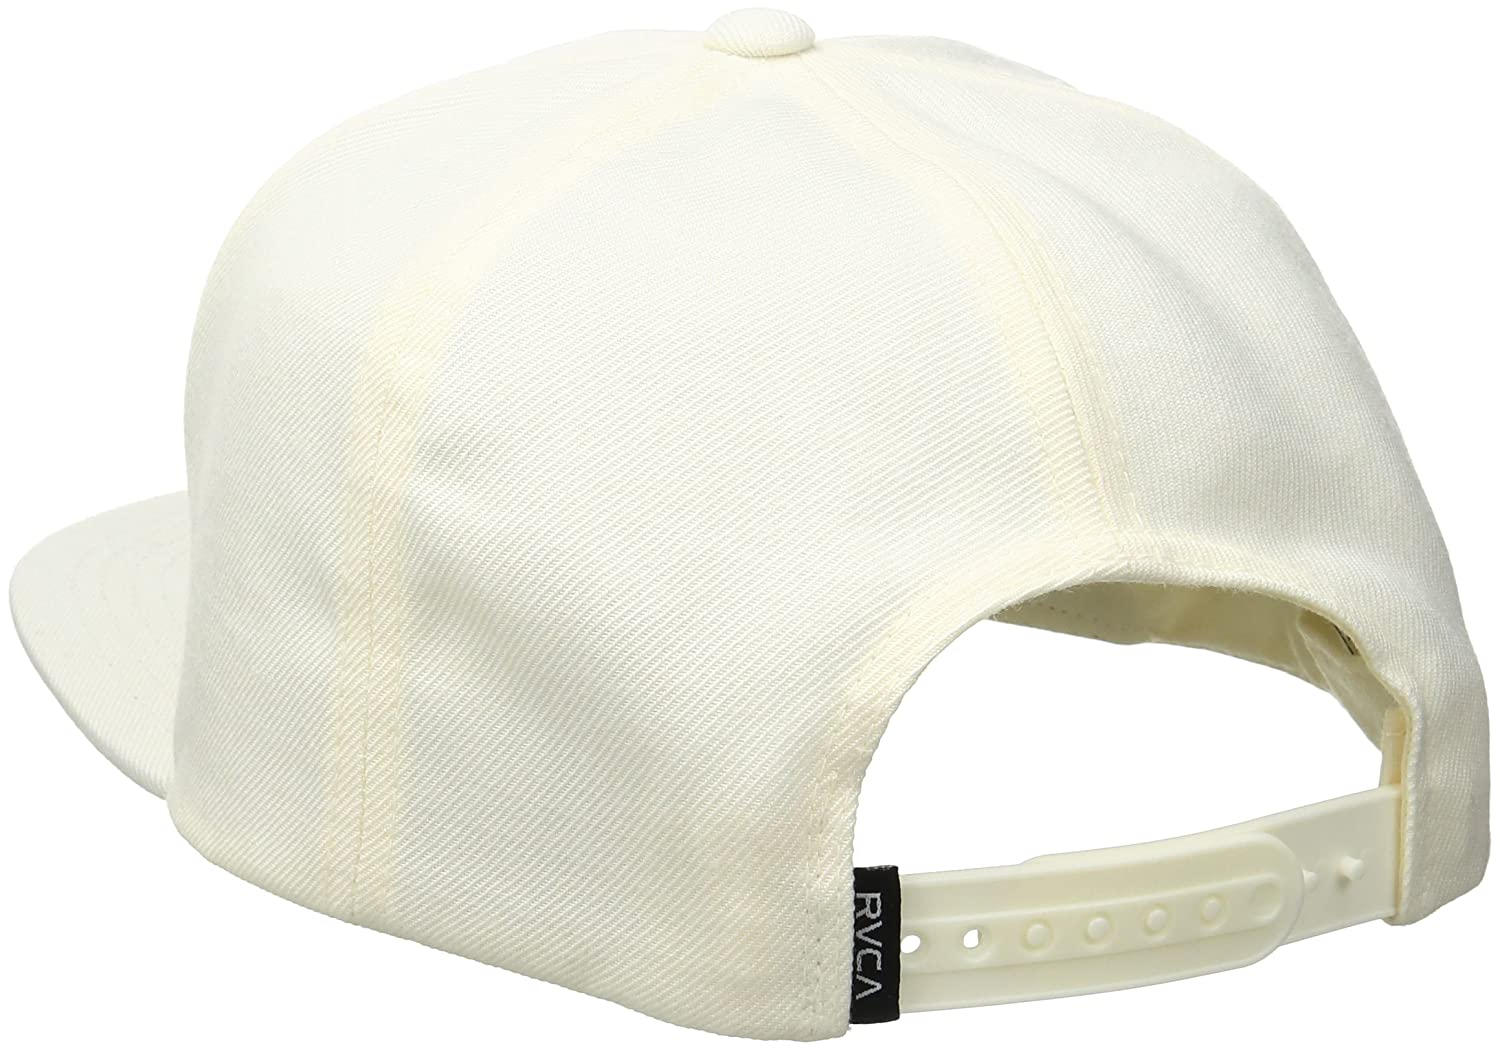 new style cdb10 d7e46 RVCA Men s Wave Box Snapback Hat, Off White, One Size  Amazon.ca  Clothing    Accessories